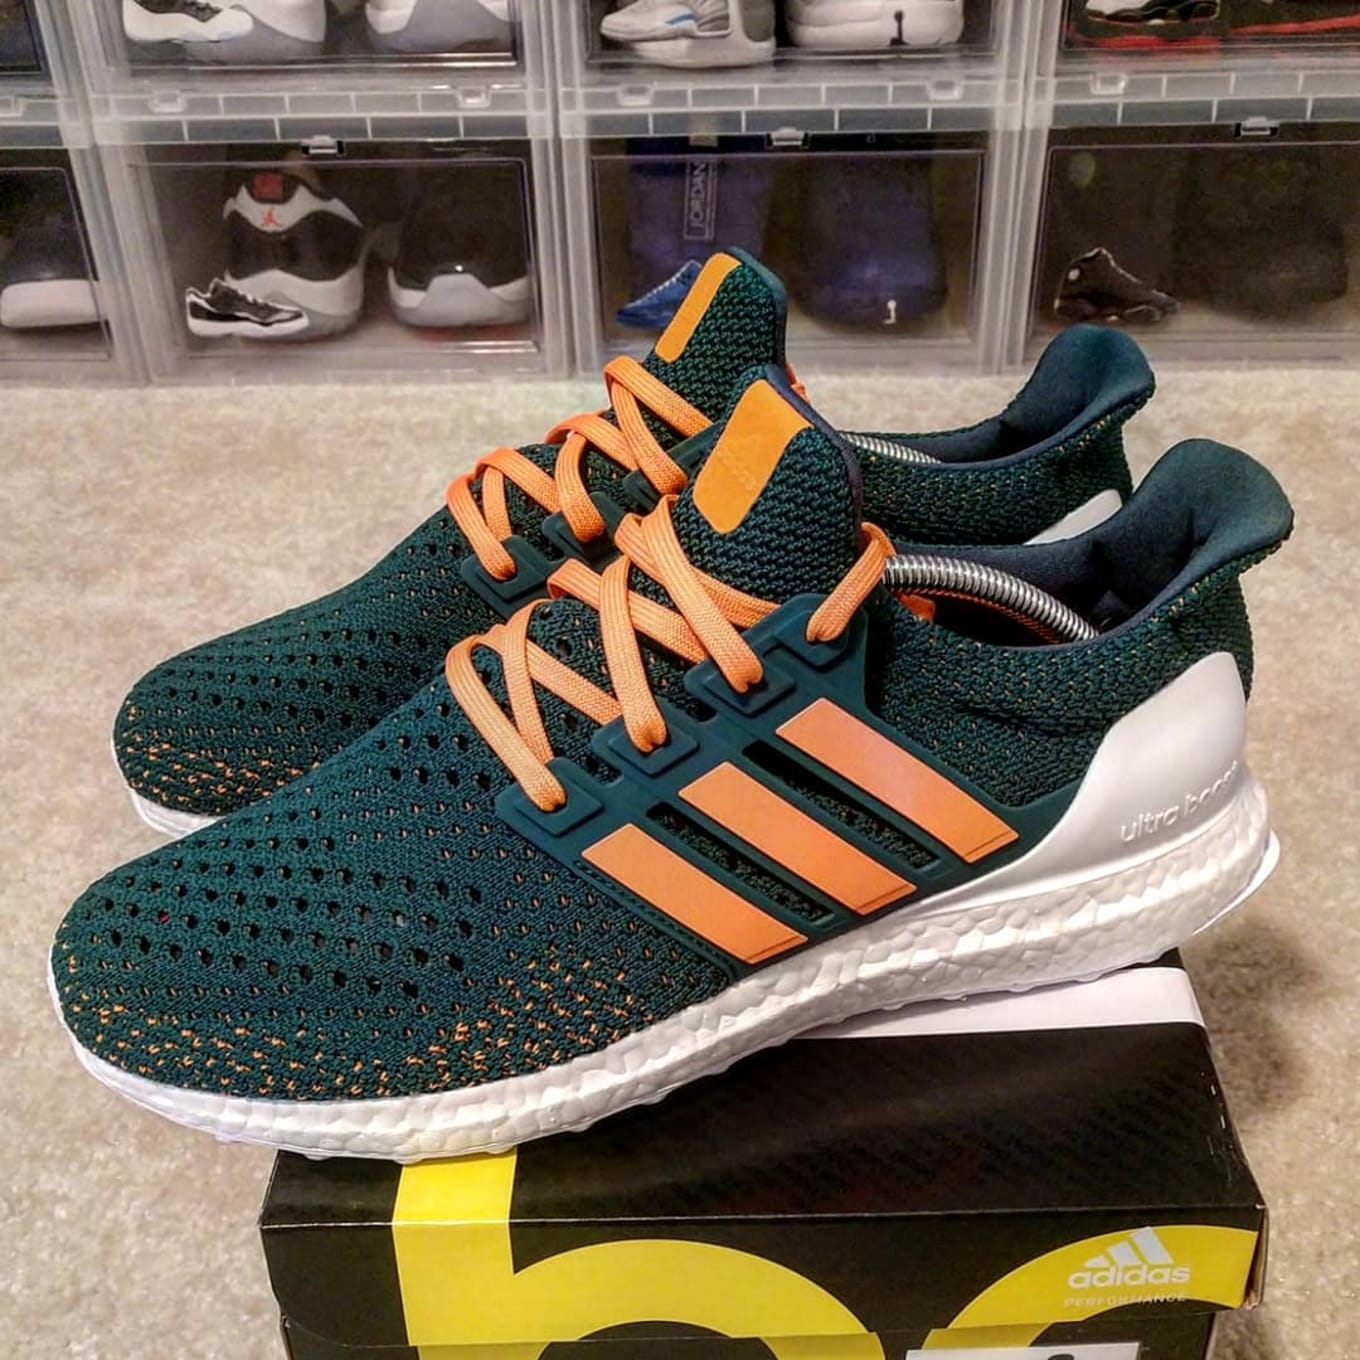 100% authentic 7740f 3013b sports shoes b76a8 c12dc ultra boost clima size 10 5 triple ...